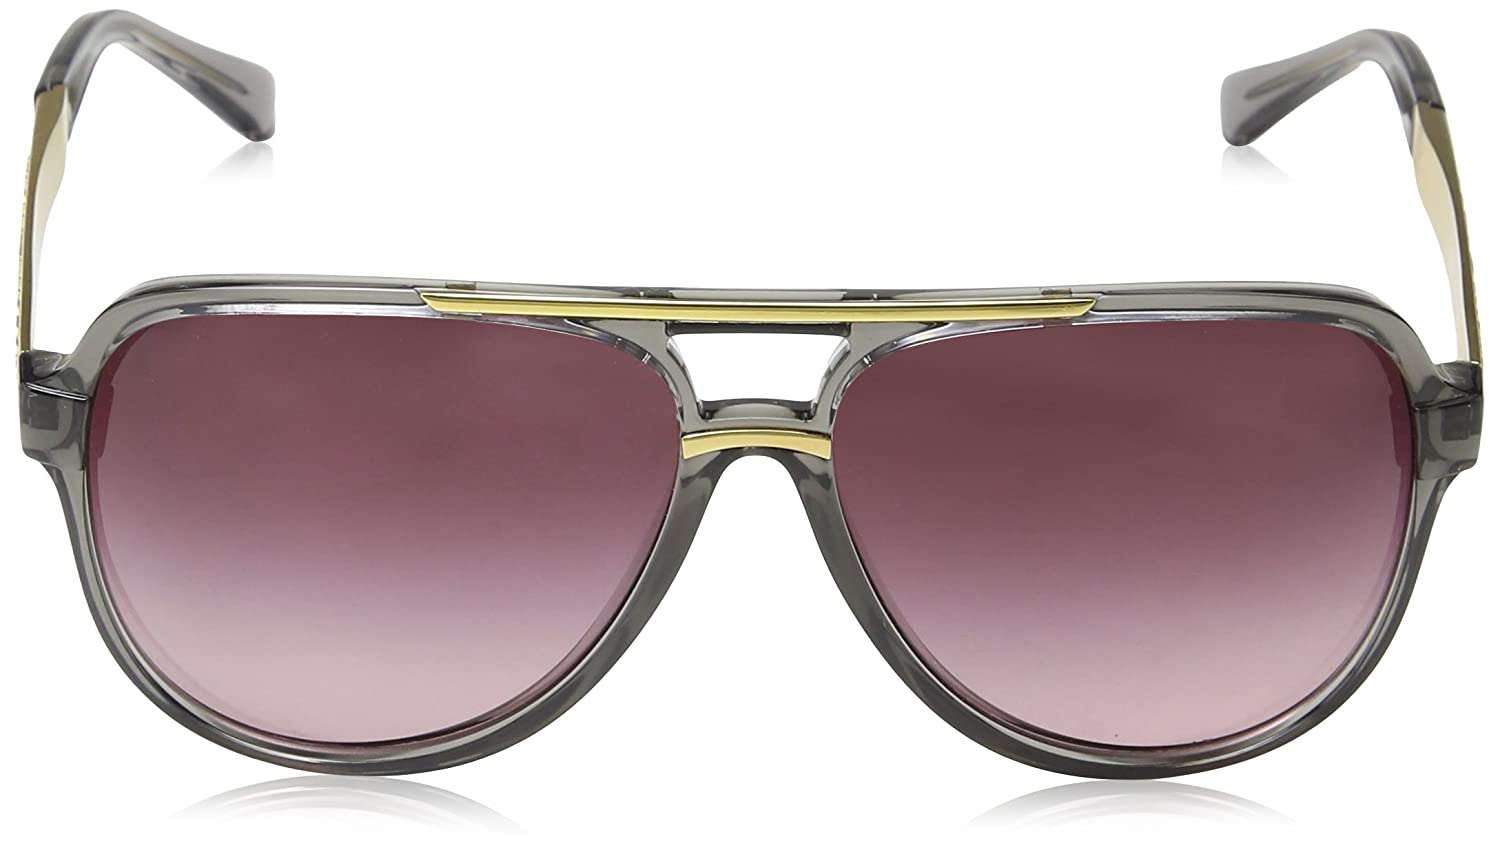 28288292eca22 Michael Kors CLEMENTINE II MK6025 Sunglasses 30918H-60 - Grey  Transparent gold MK6025-30918H-60 at Amazon Women s Clothing store